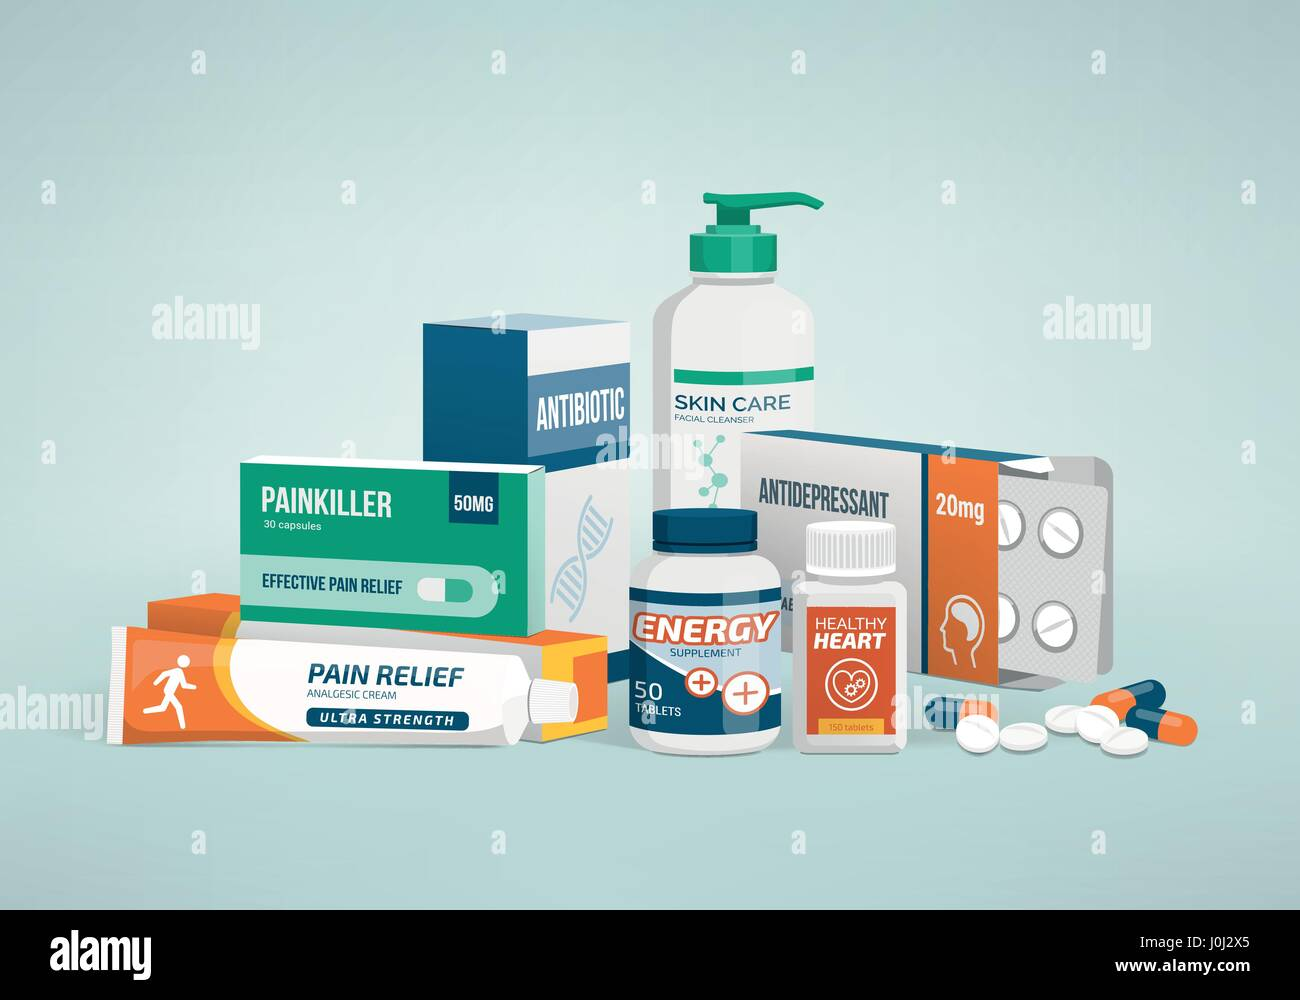 Healthcare, medicine and drug types, pharmaceutical packaging - Stock Image